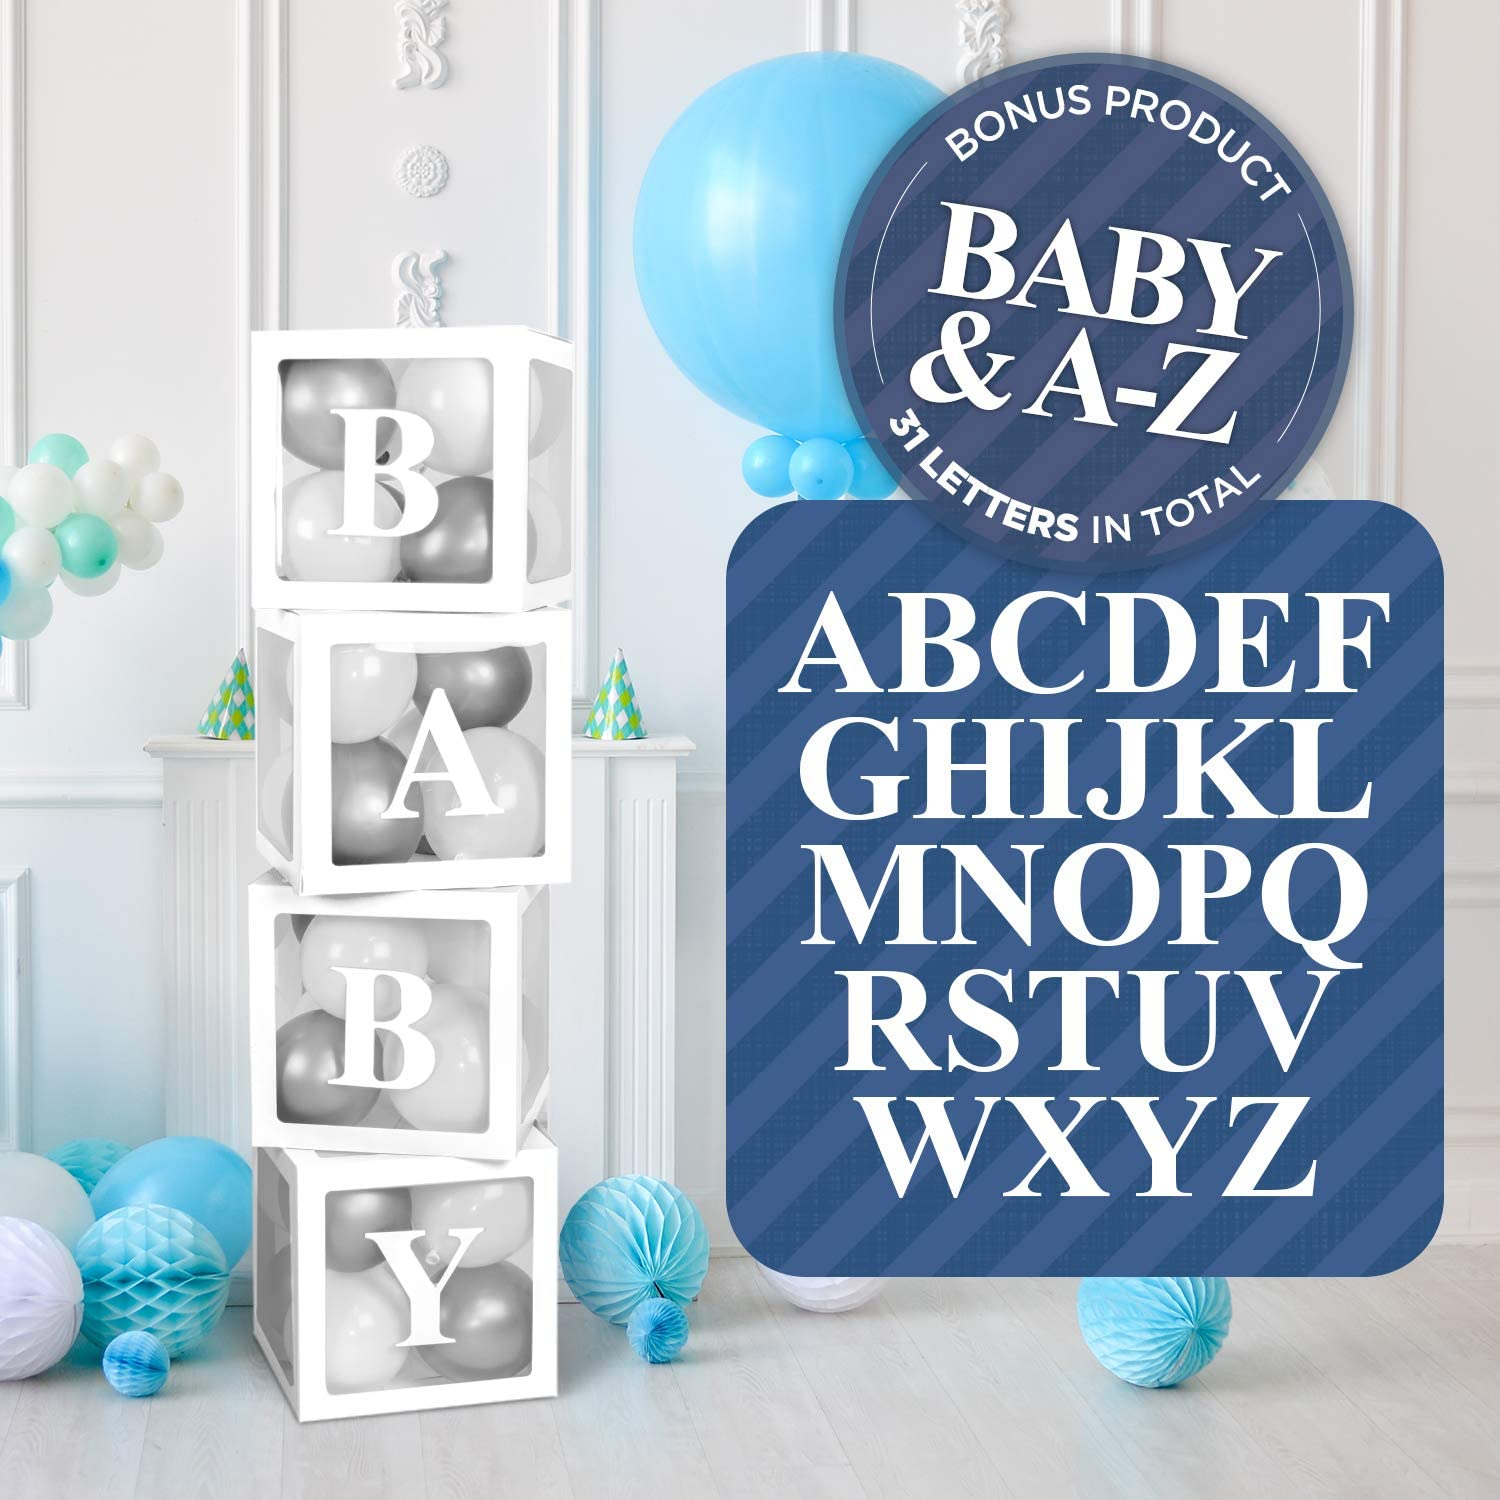 Baby Shower Balloon Box Decorations | 31 Letters A-Z + B + BABY for GRAD, Names for Birthday Party Decor, Gender Reveal Transparent Decorative Blocks (White)